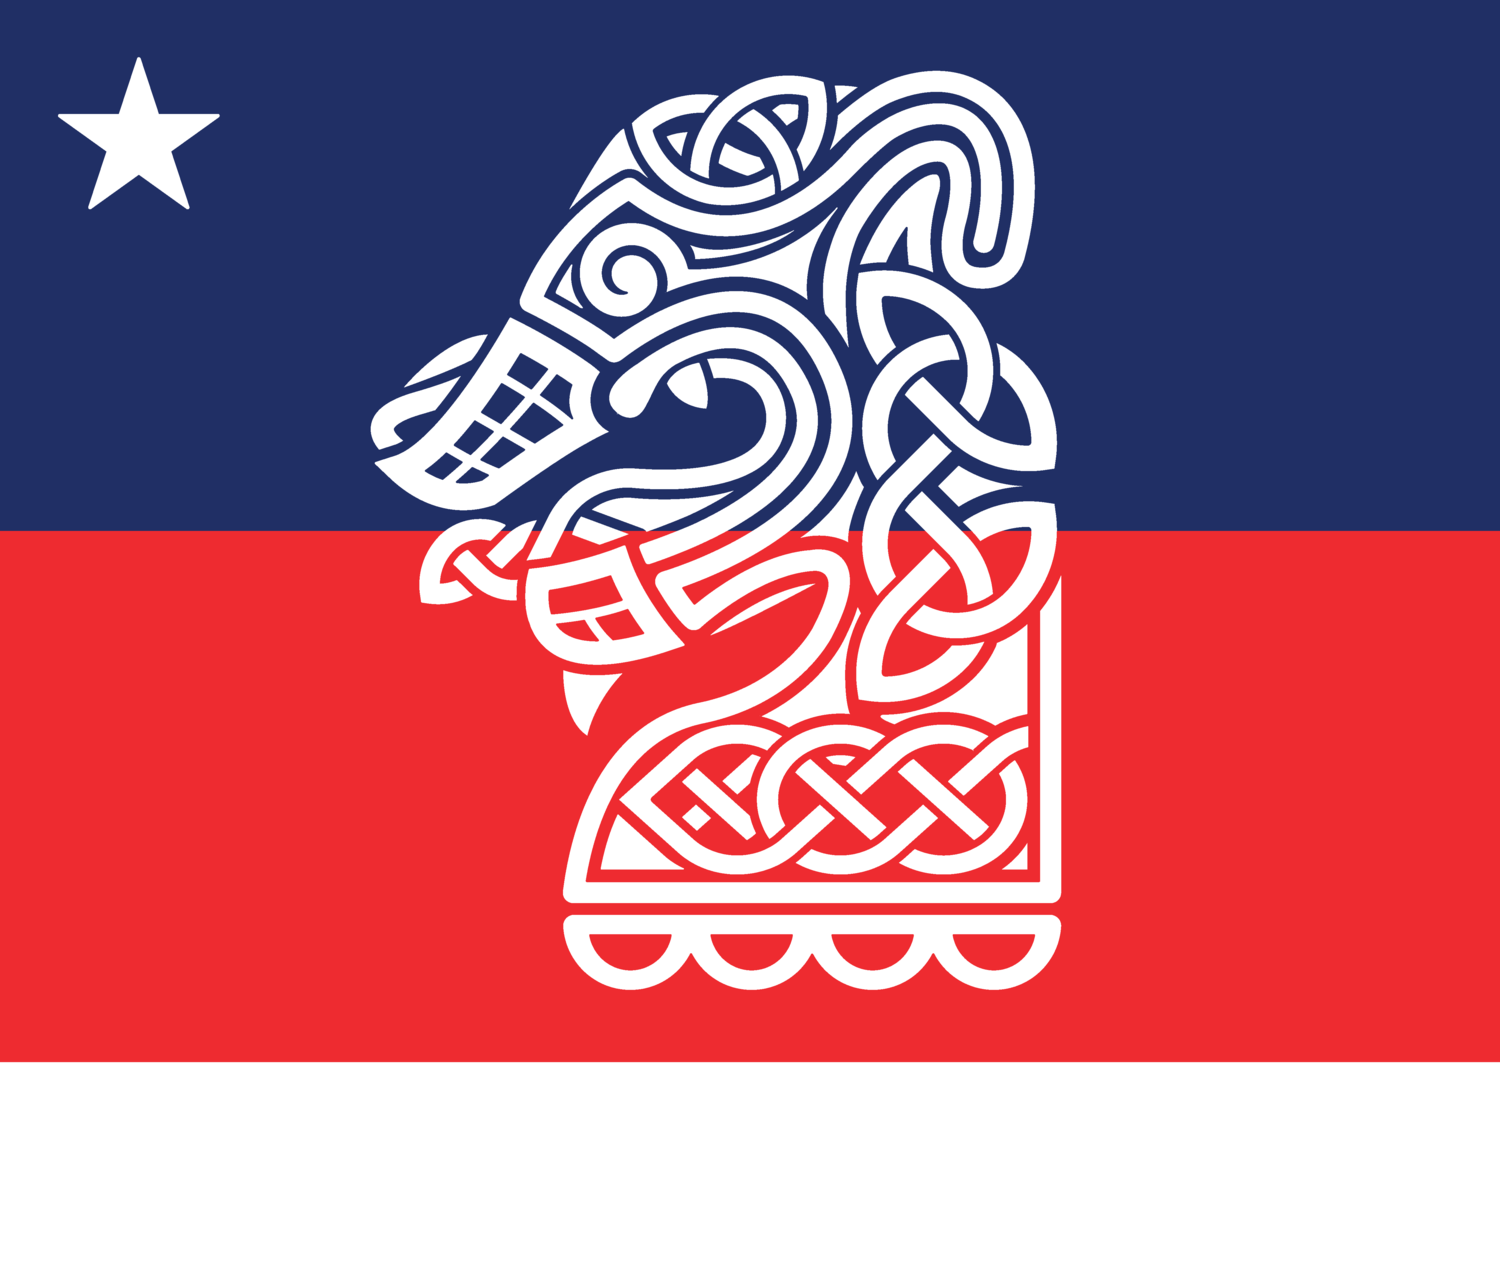 Government of Helluland